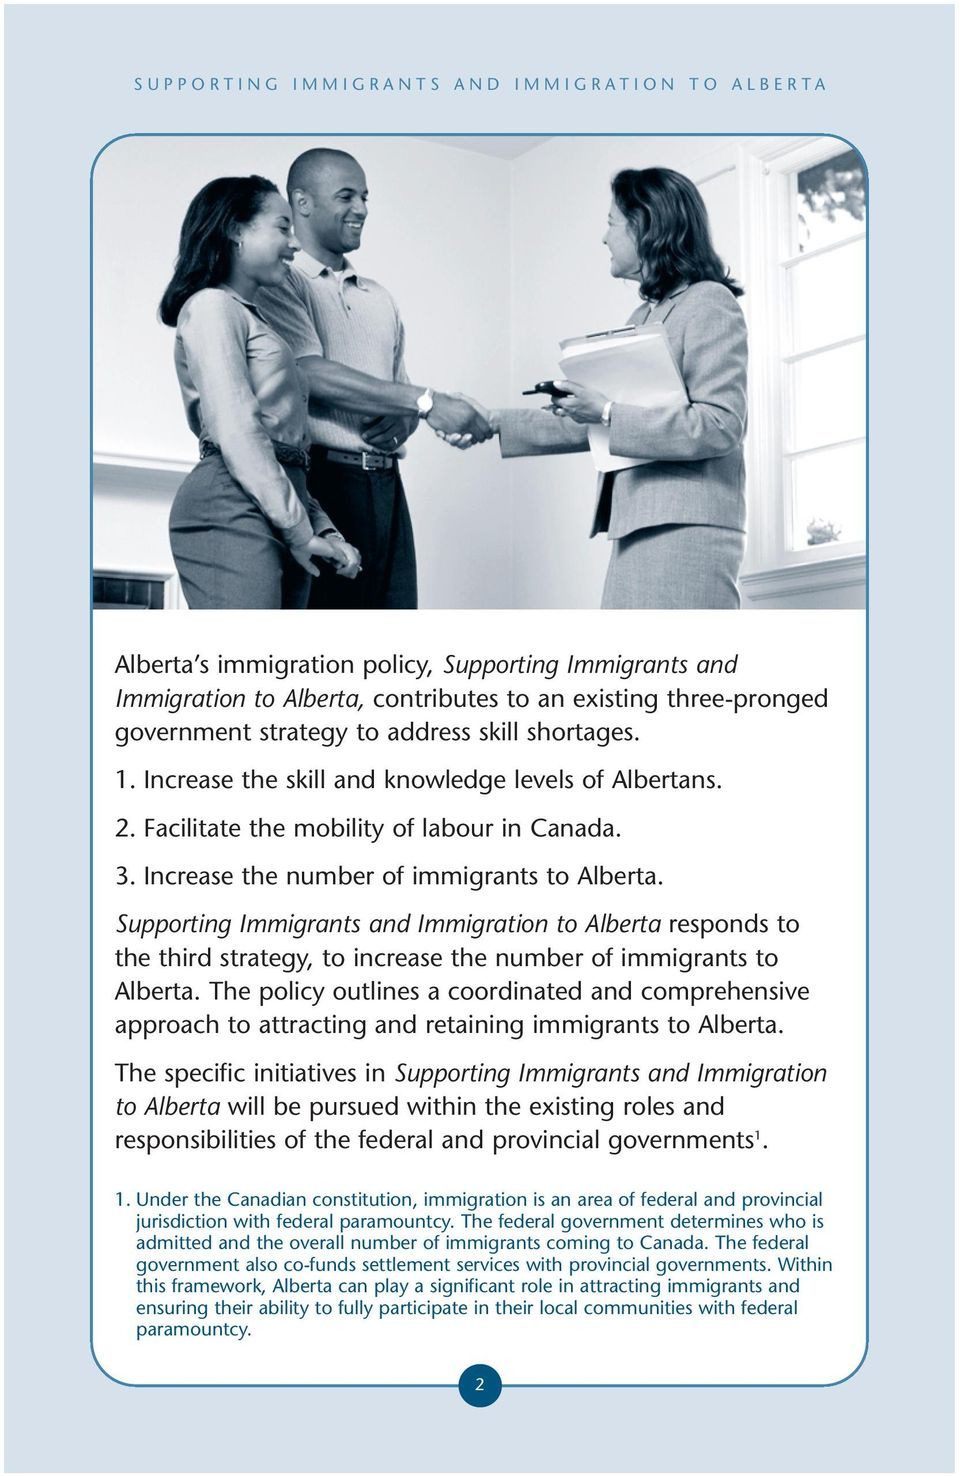 Supporting Immigrants and Immigration to Alberta responds to the third strategy, to increase the number of immigrants to Alberta.